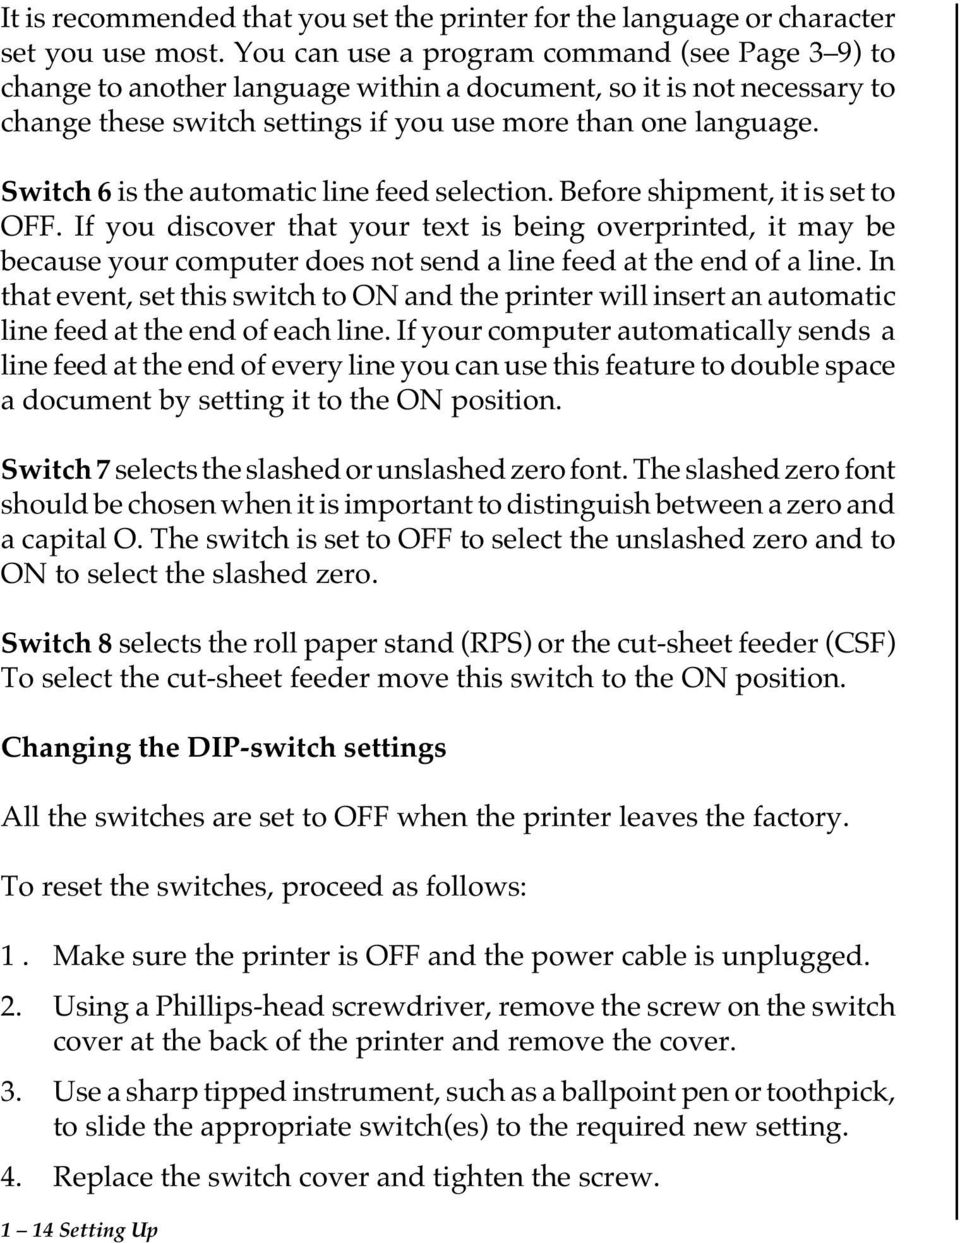 Switch 6 is the automatic line feed selection. Before shipment, it is set to OFF.